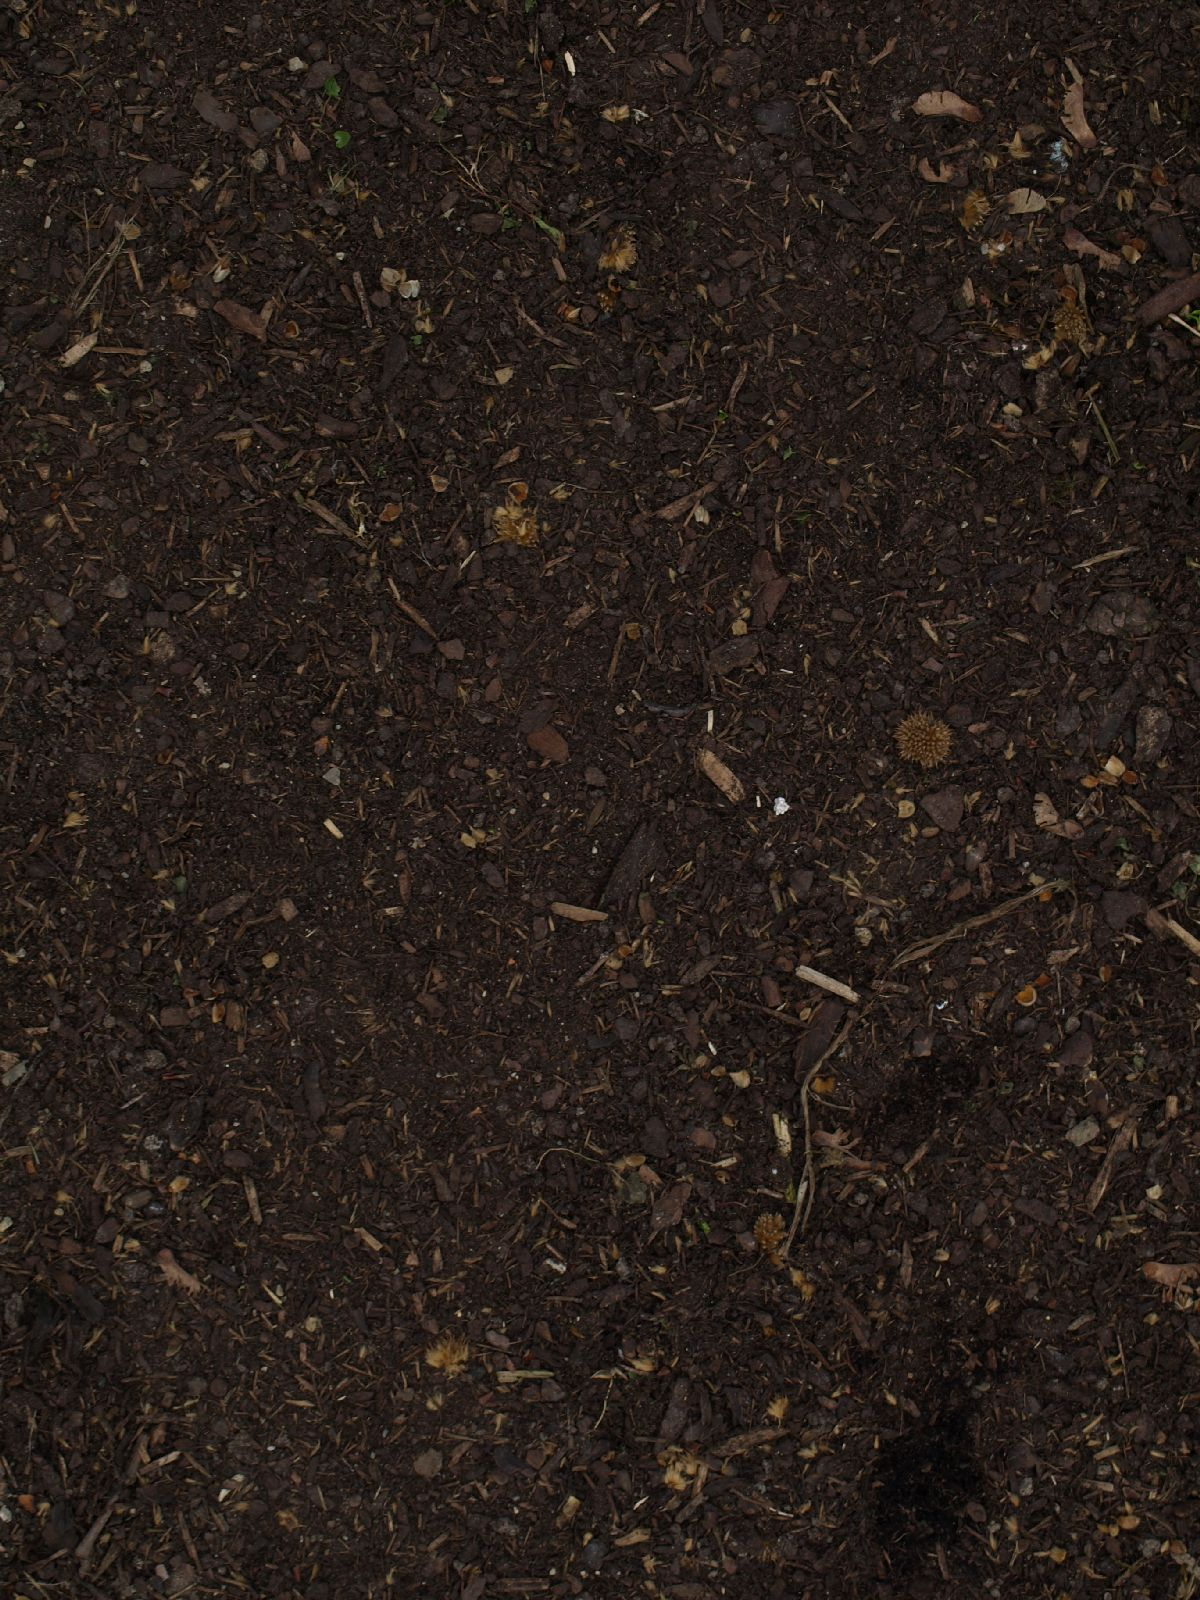 Ground-Nature_Texture_A_P4120842